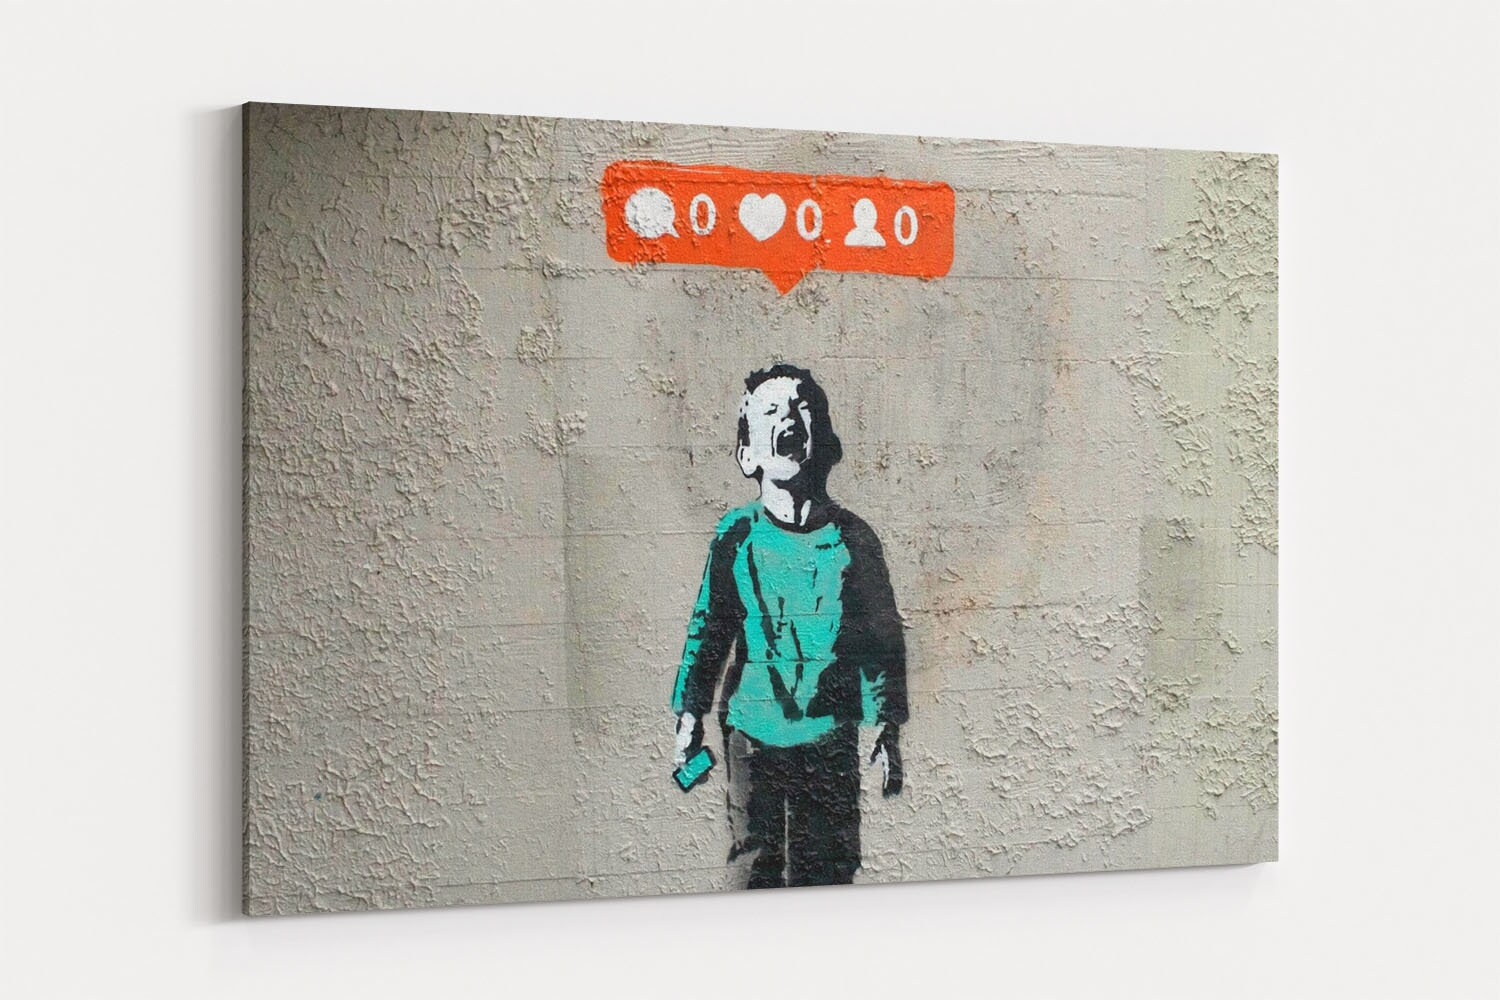 Banksy Canvas Art Nobody Likes Me Games Banksy Street Art Canvas Wall Art Banksy Graffiti Canvas Prints Canvas Art Painting Wall Decor Artwork Decal